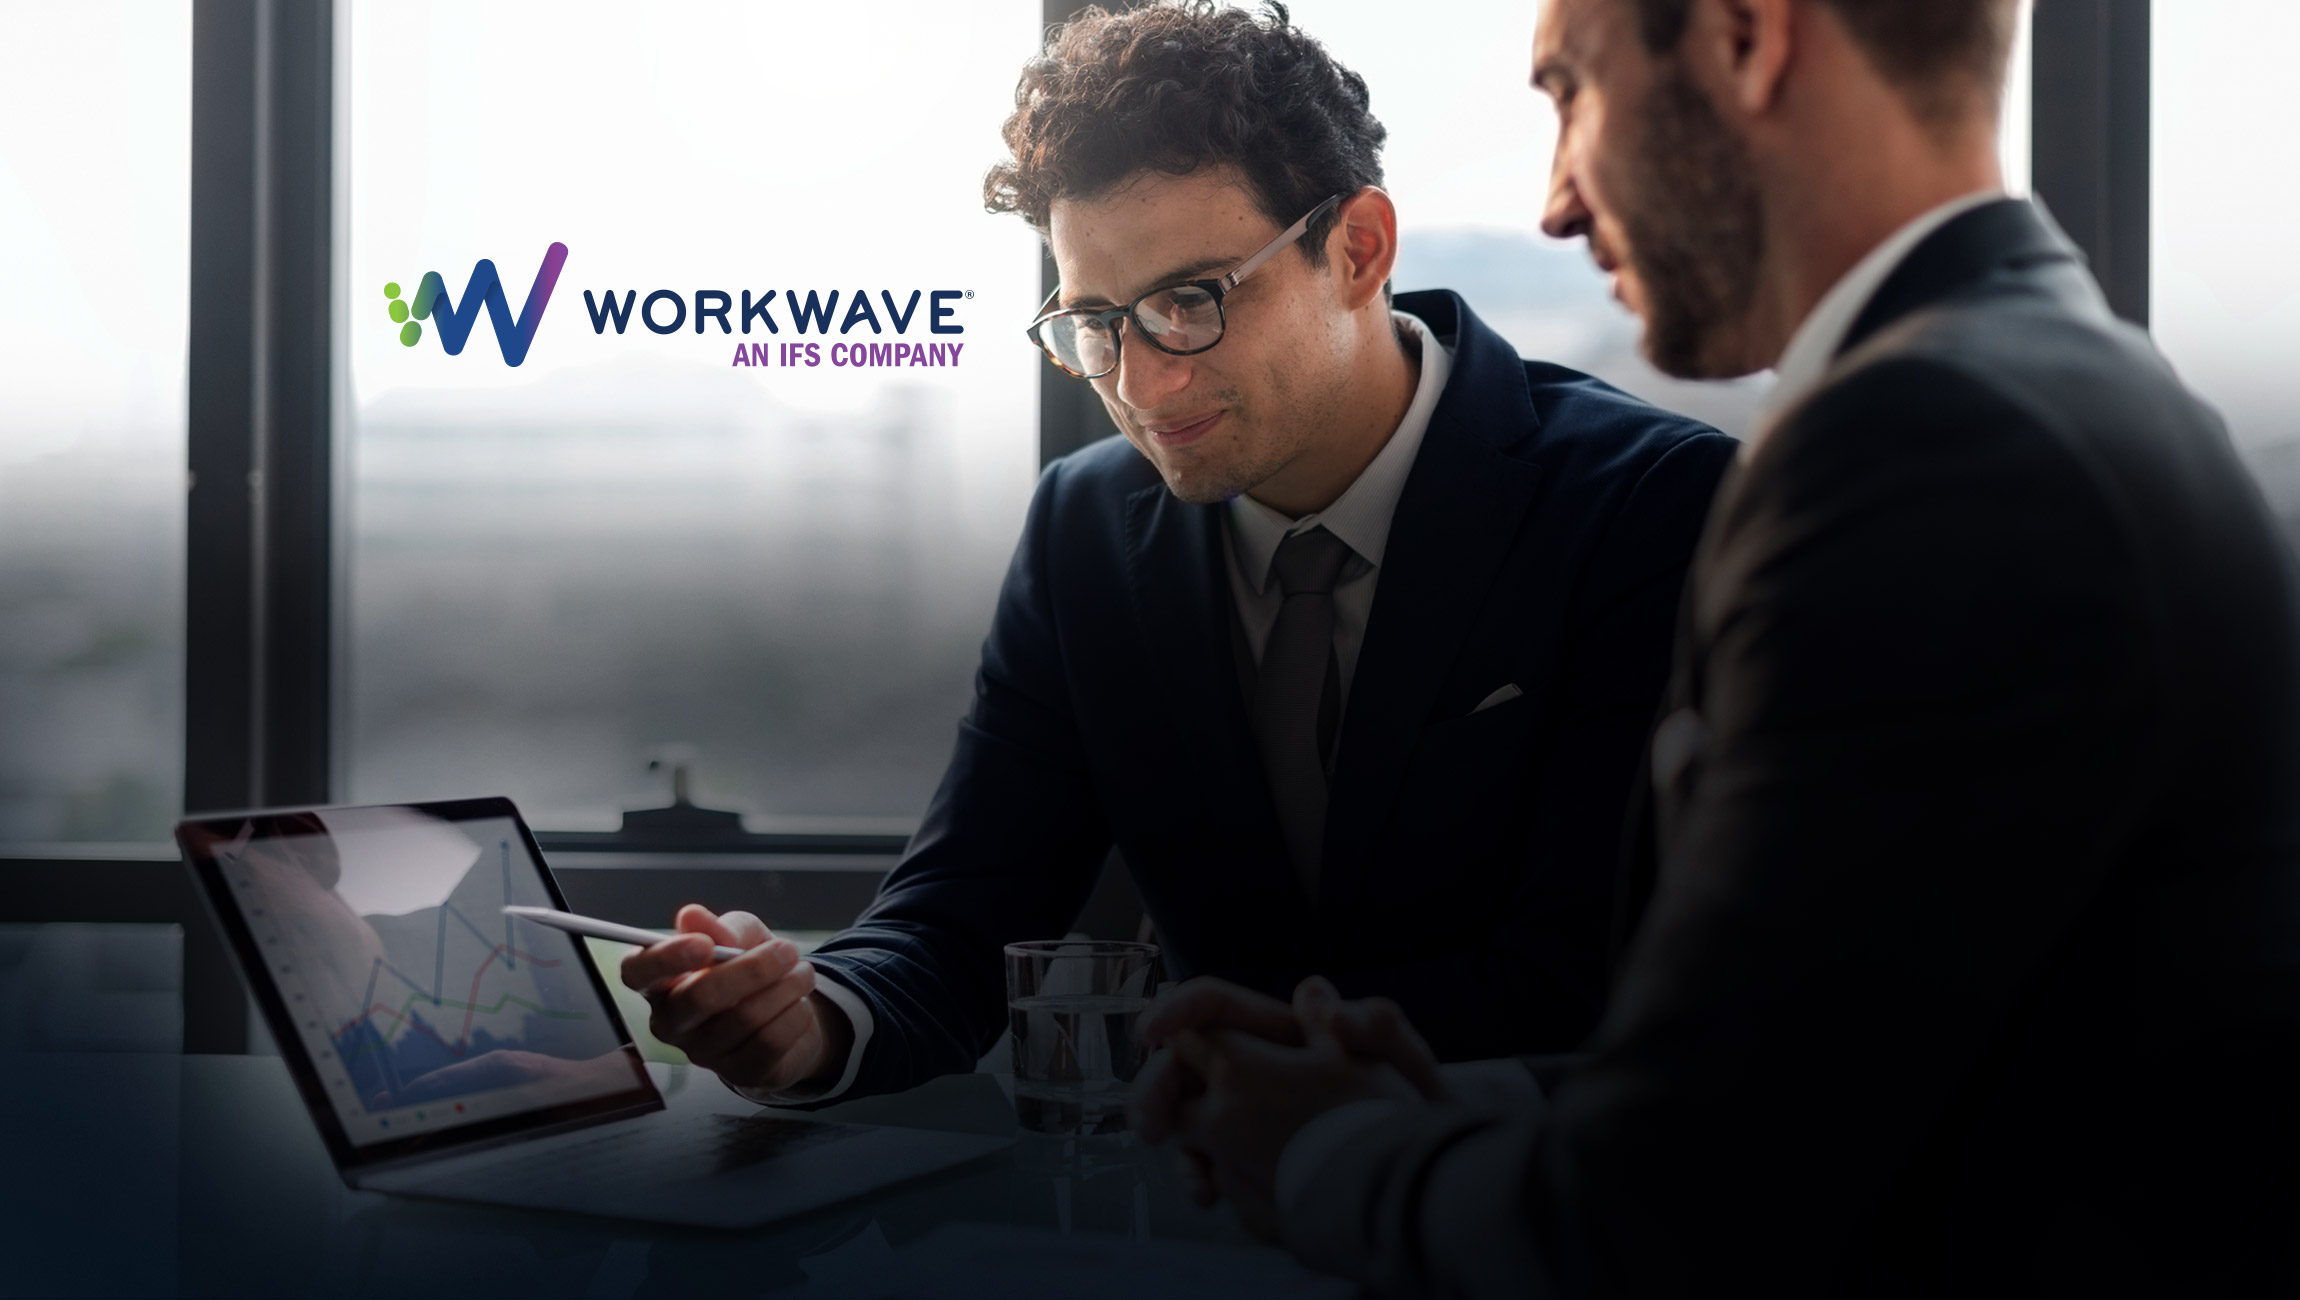 WorkWave's Online Reviews Platform Empowers Field Service Companies to Generate More Leads and Close More Sales